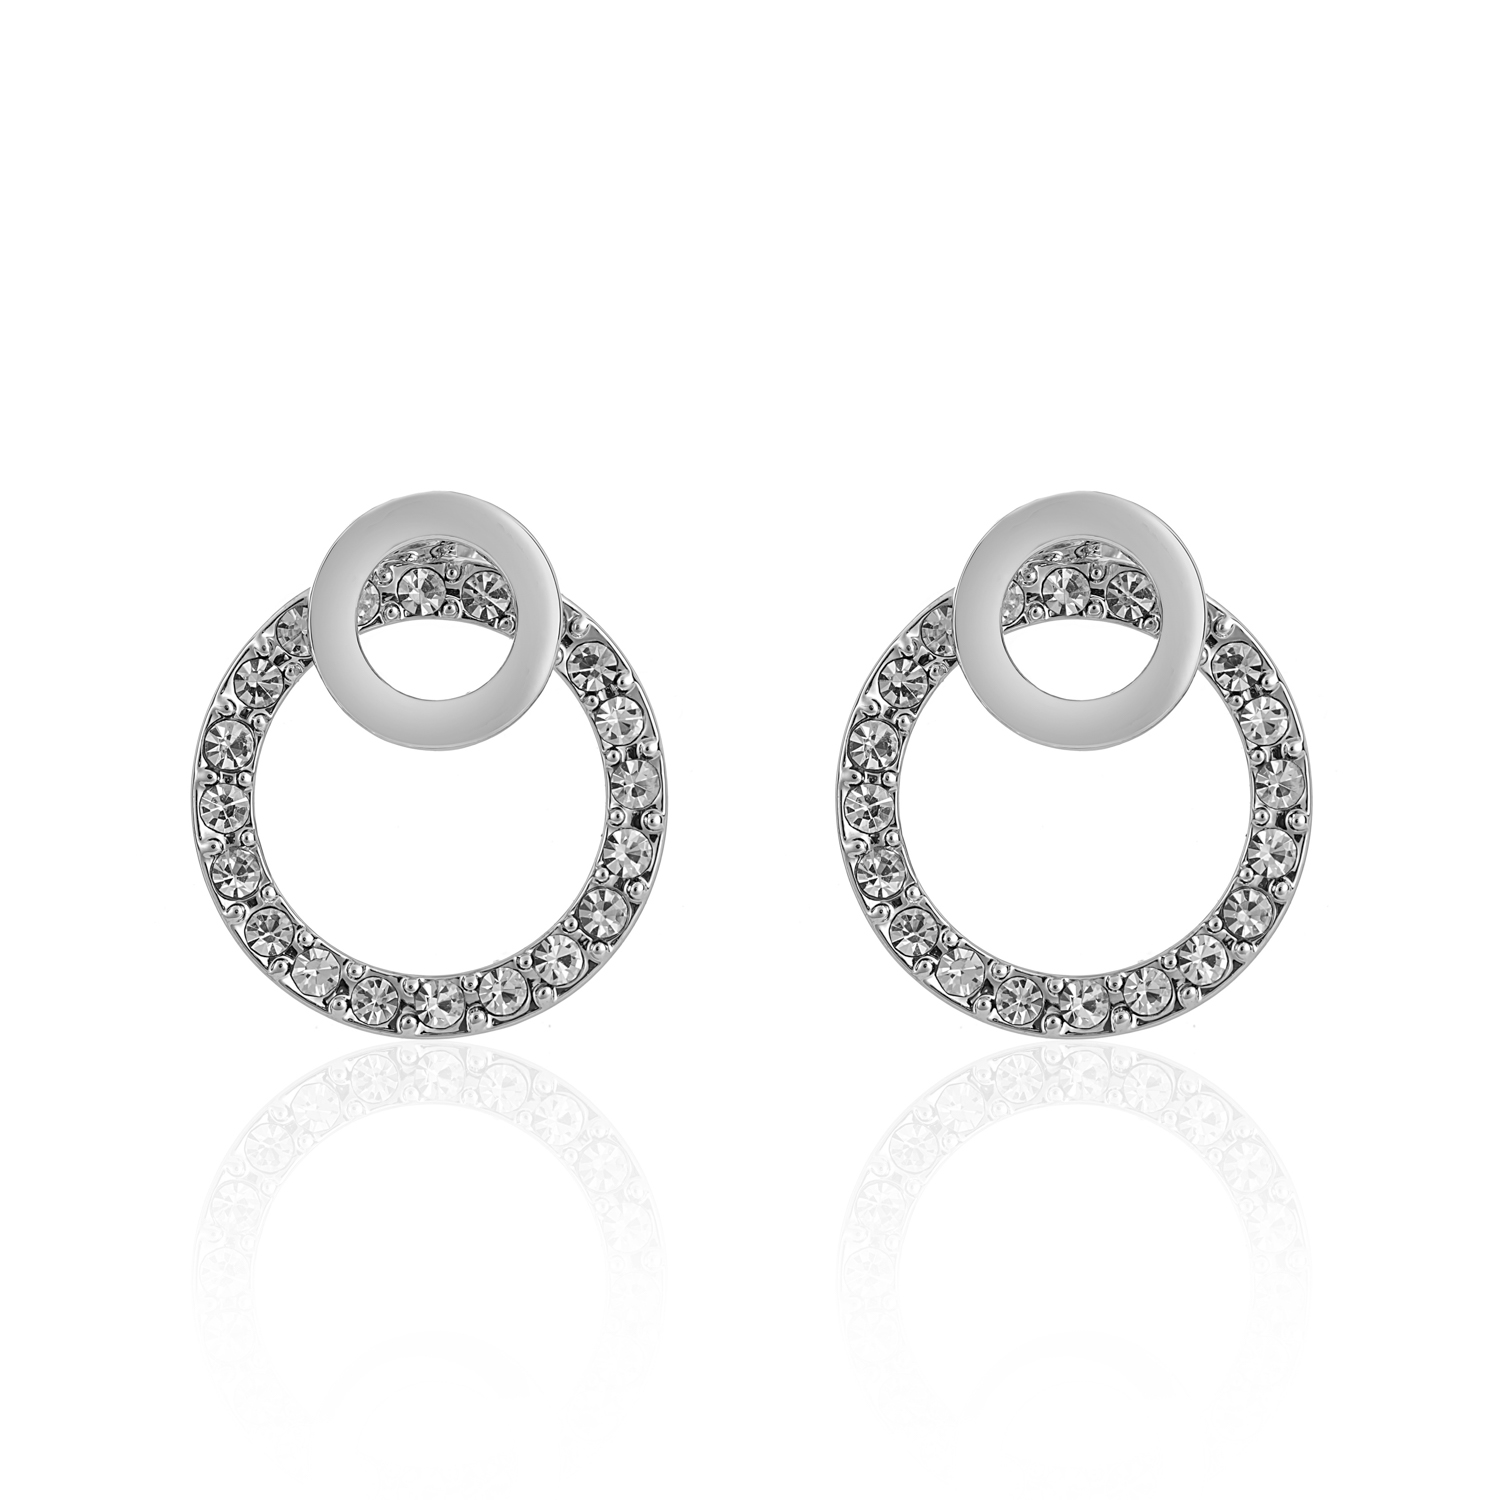 Cameo Silver Circle Earrings